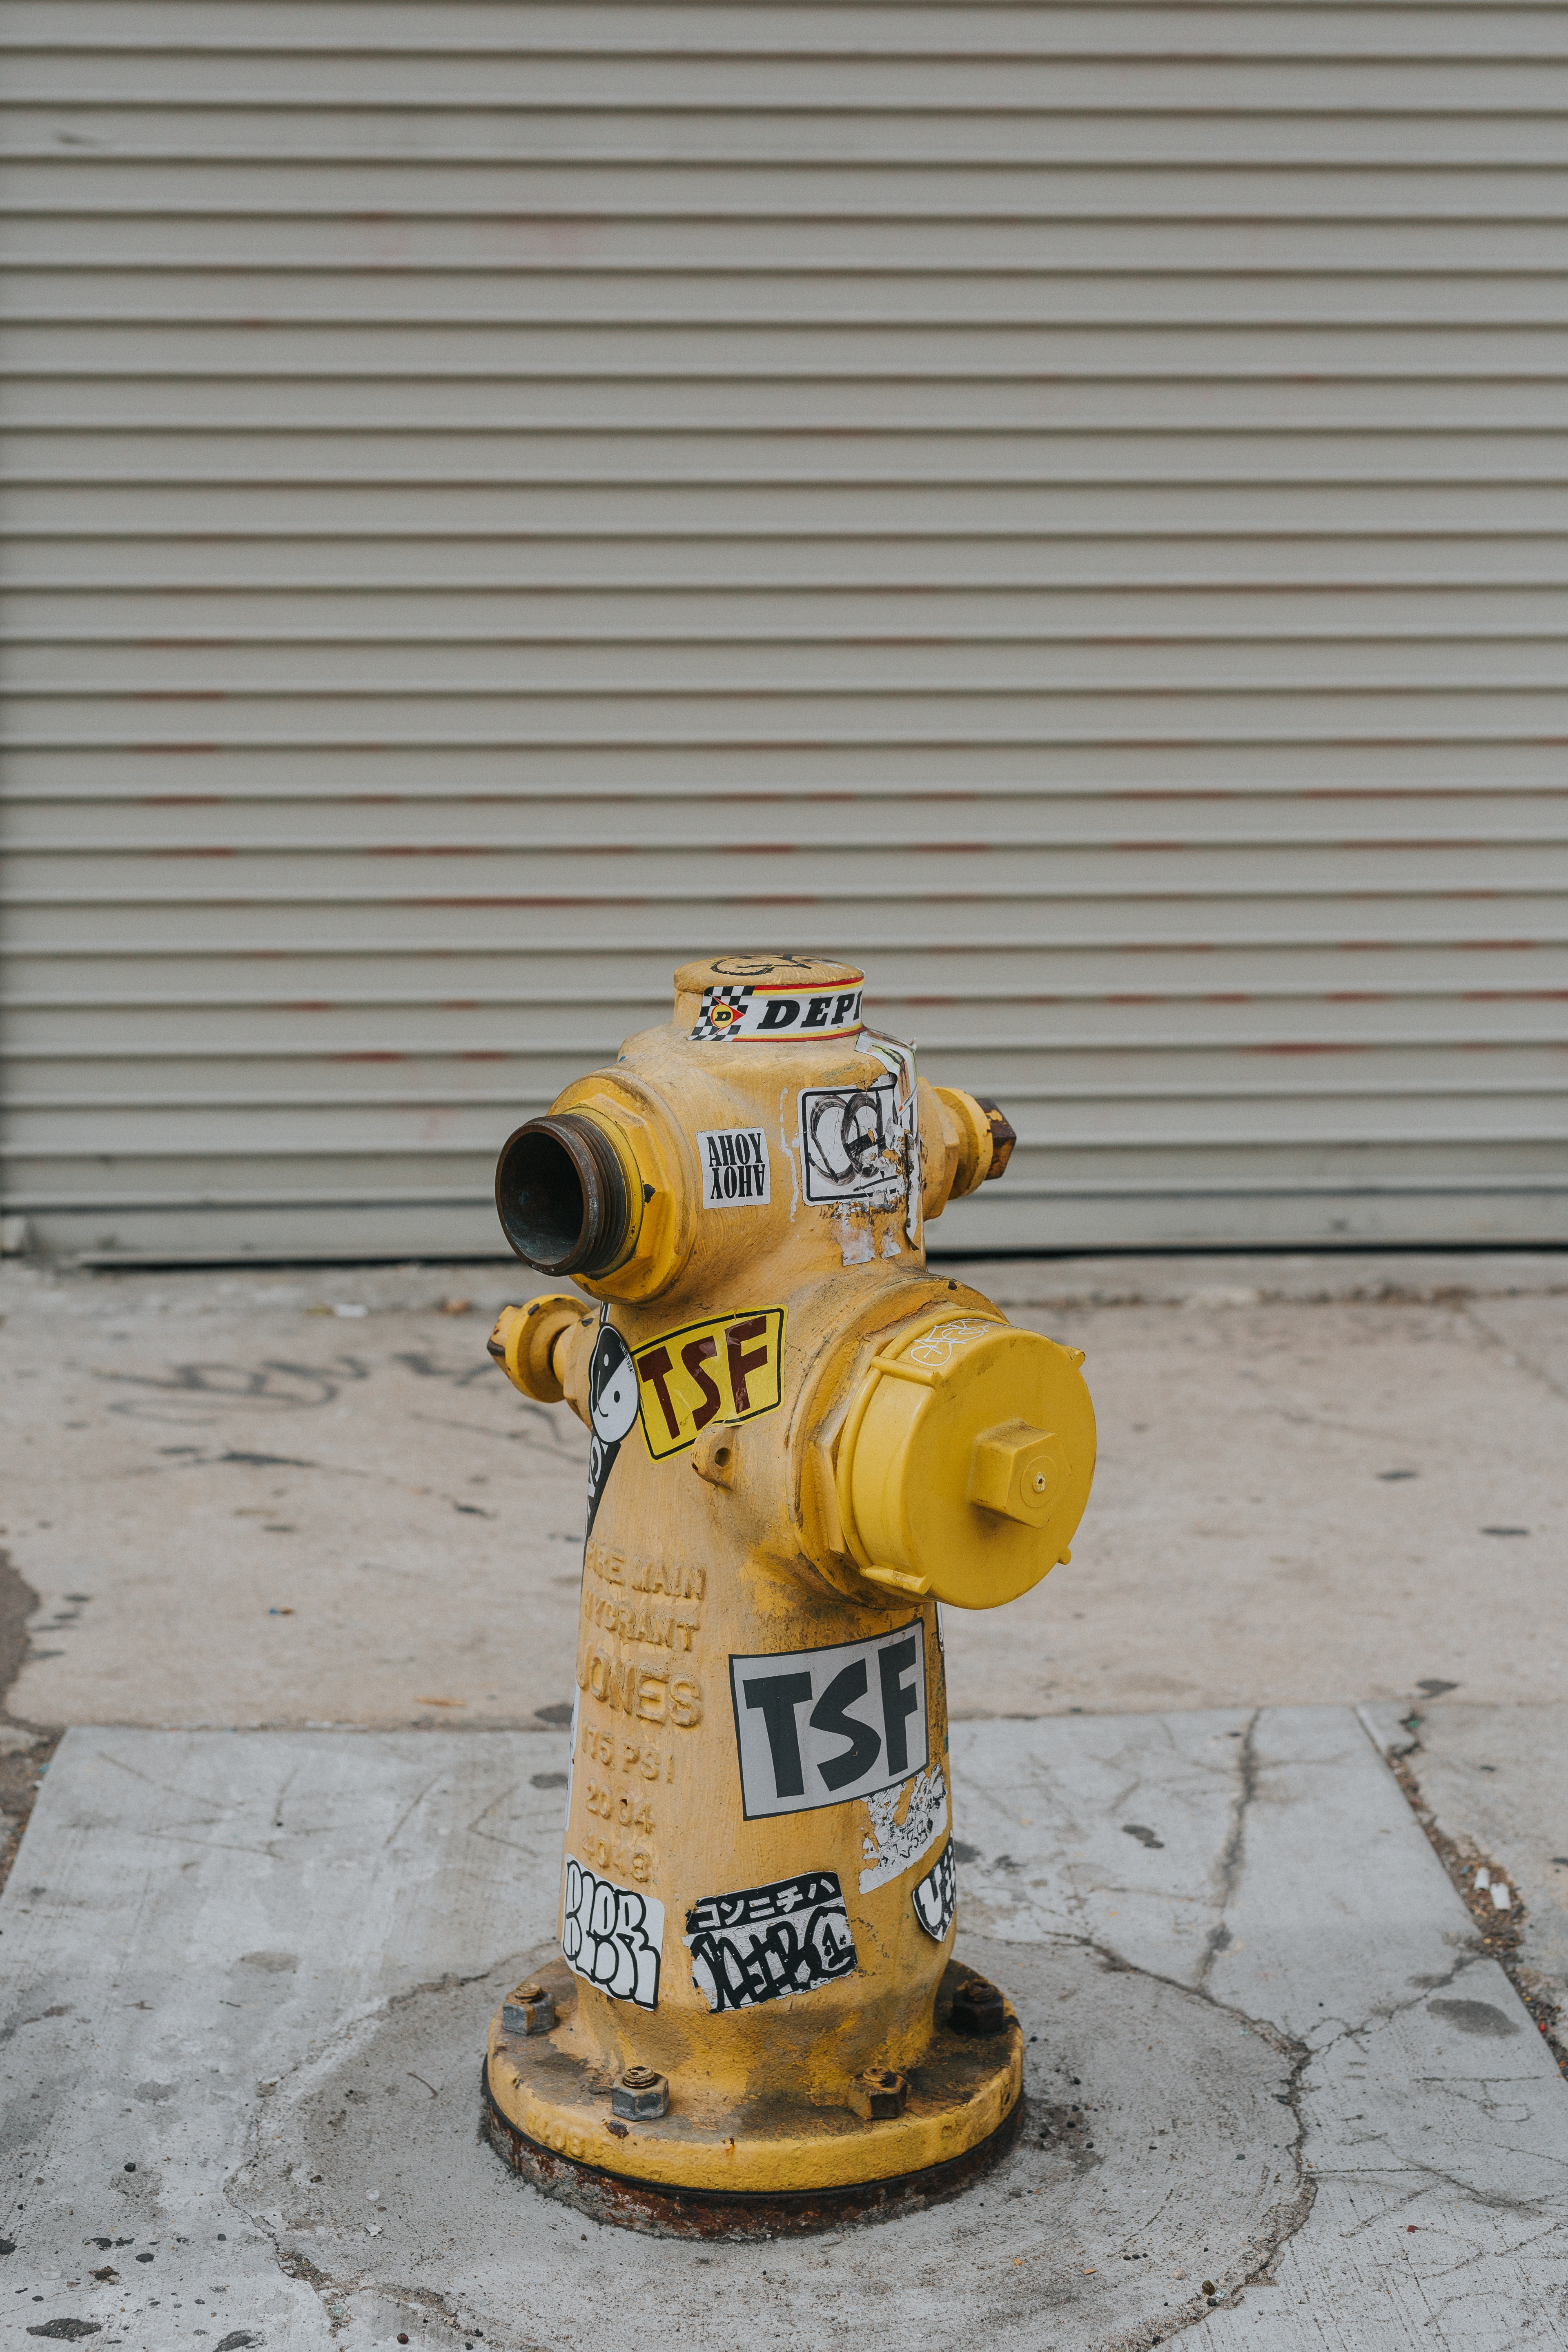 yellow and white fire hydrant